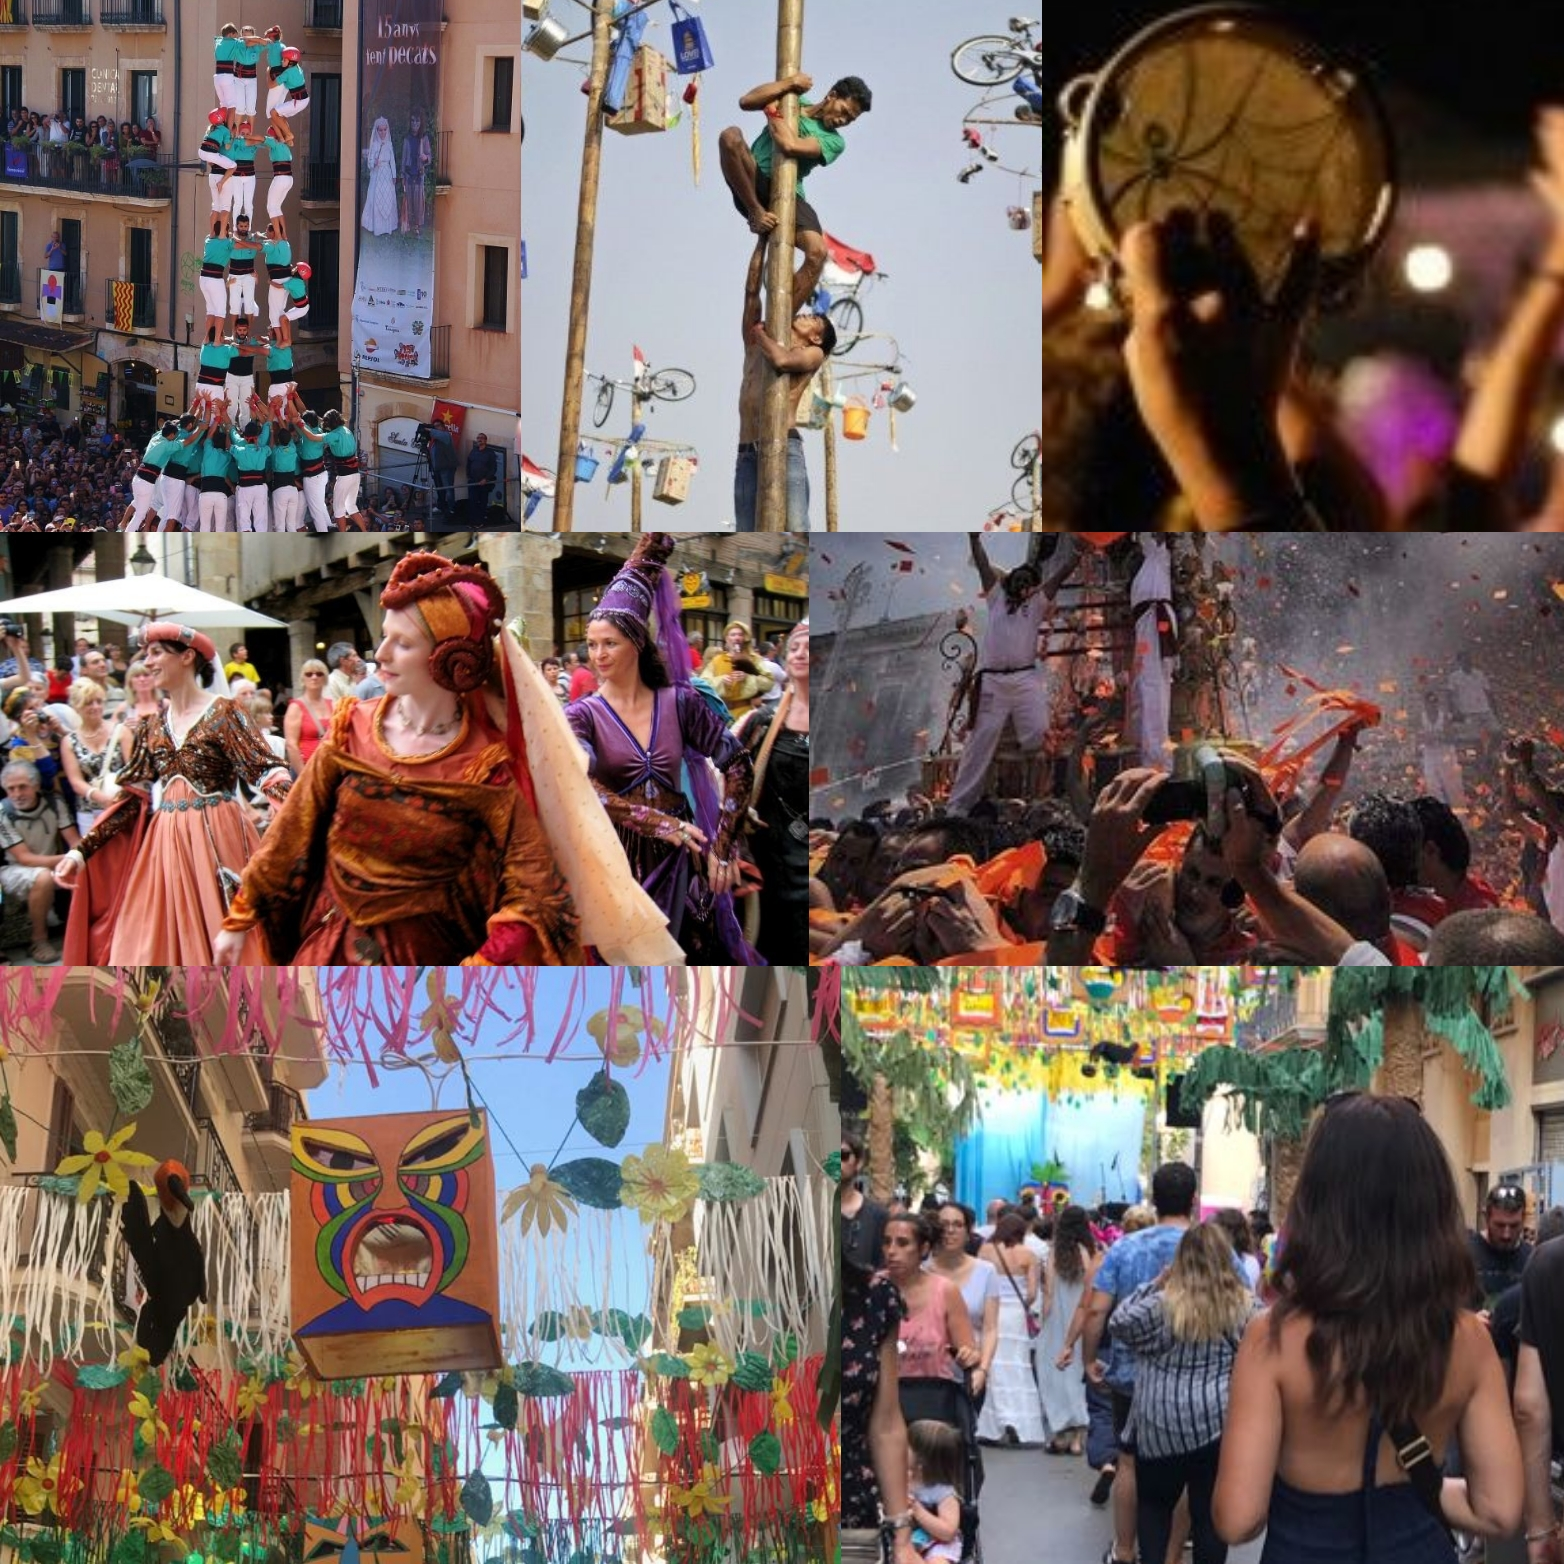 [:it]Events and festivals in July and August, in Italy and in the world. [:in]EVENTS AND FESTIVALS IN JULY AND AUGUST, IN ITALY AND AROUND THE WORLD.[:]